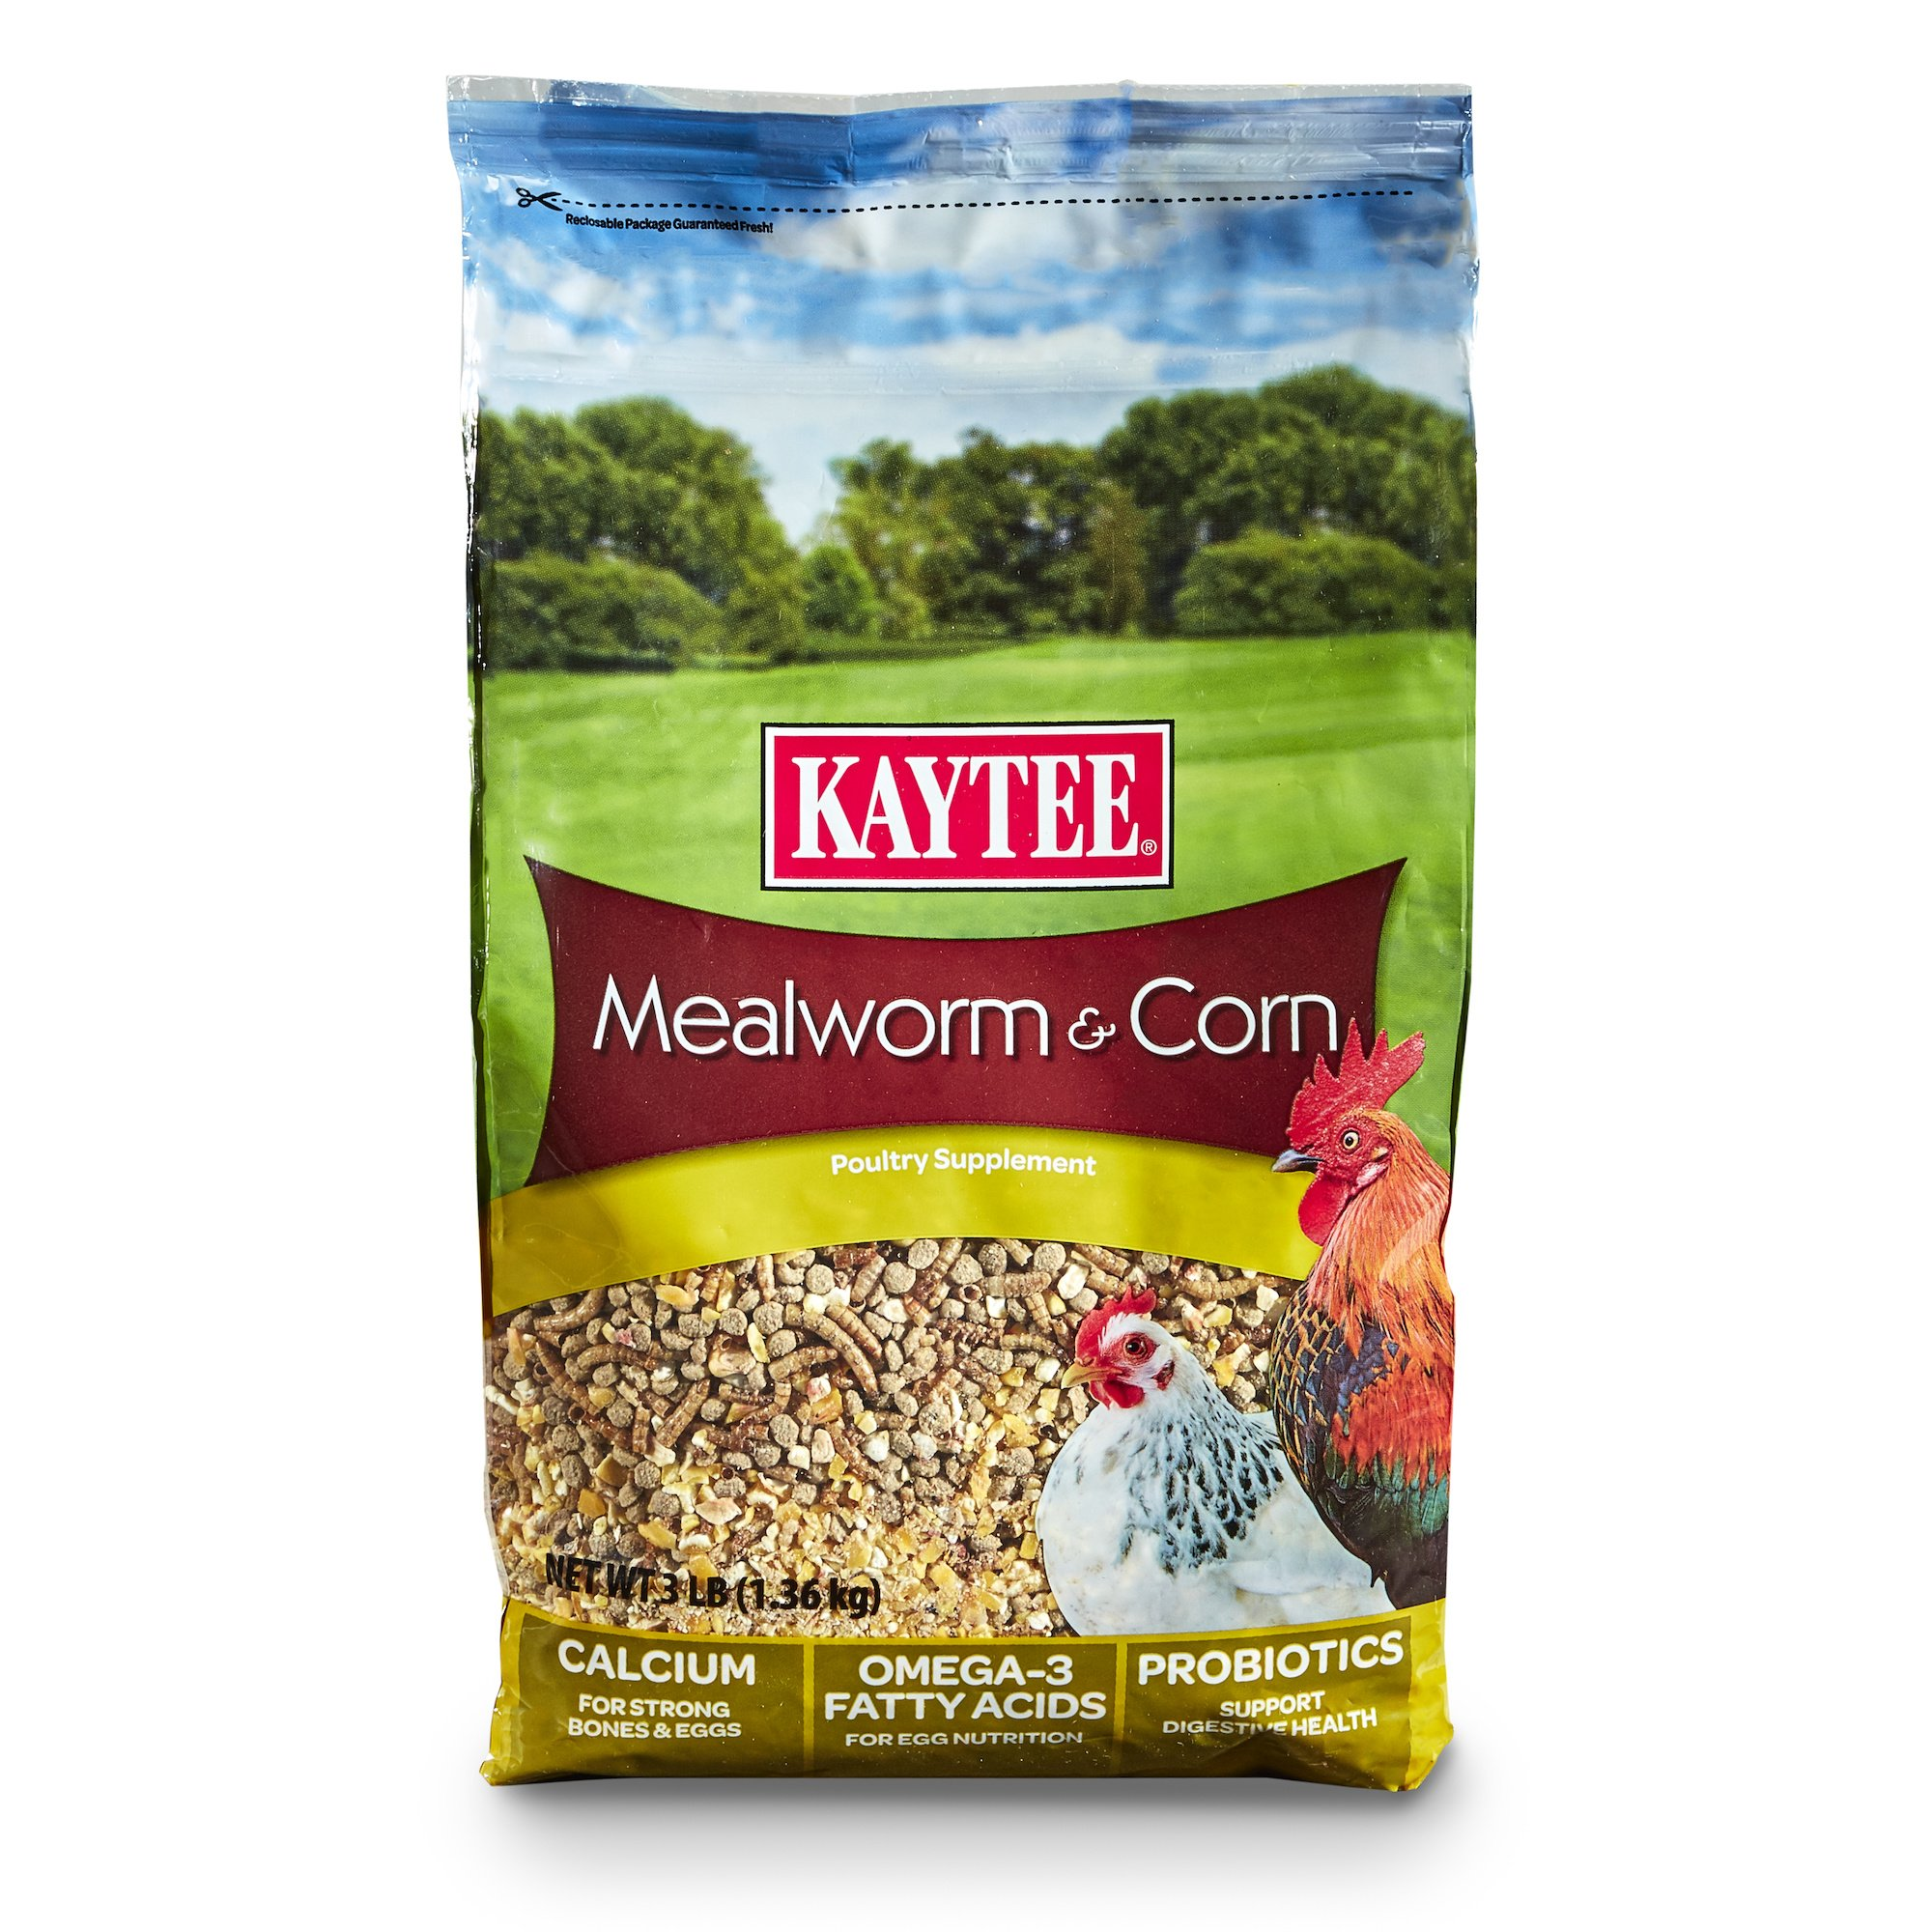 Kaytee Mealworms and Corn Treat, 3 Pound by Kaytee (Image #1)